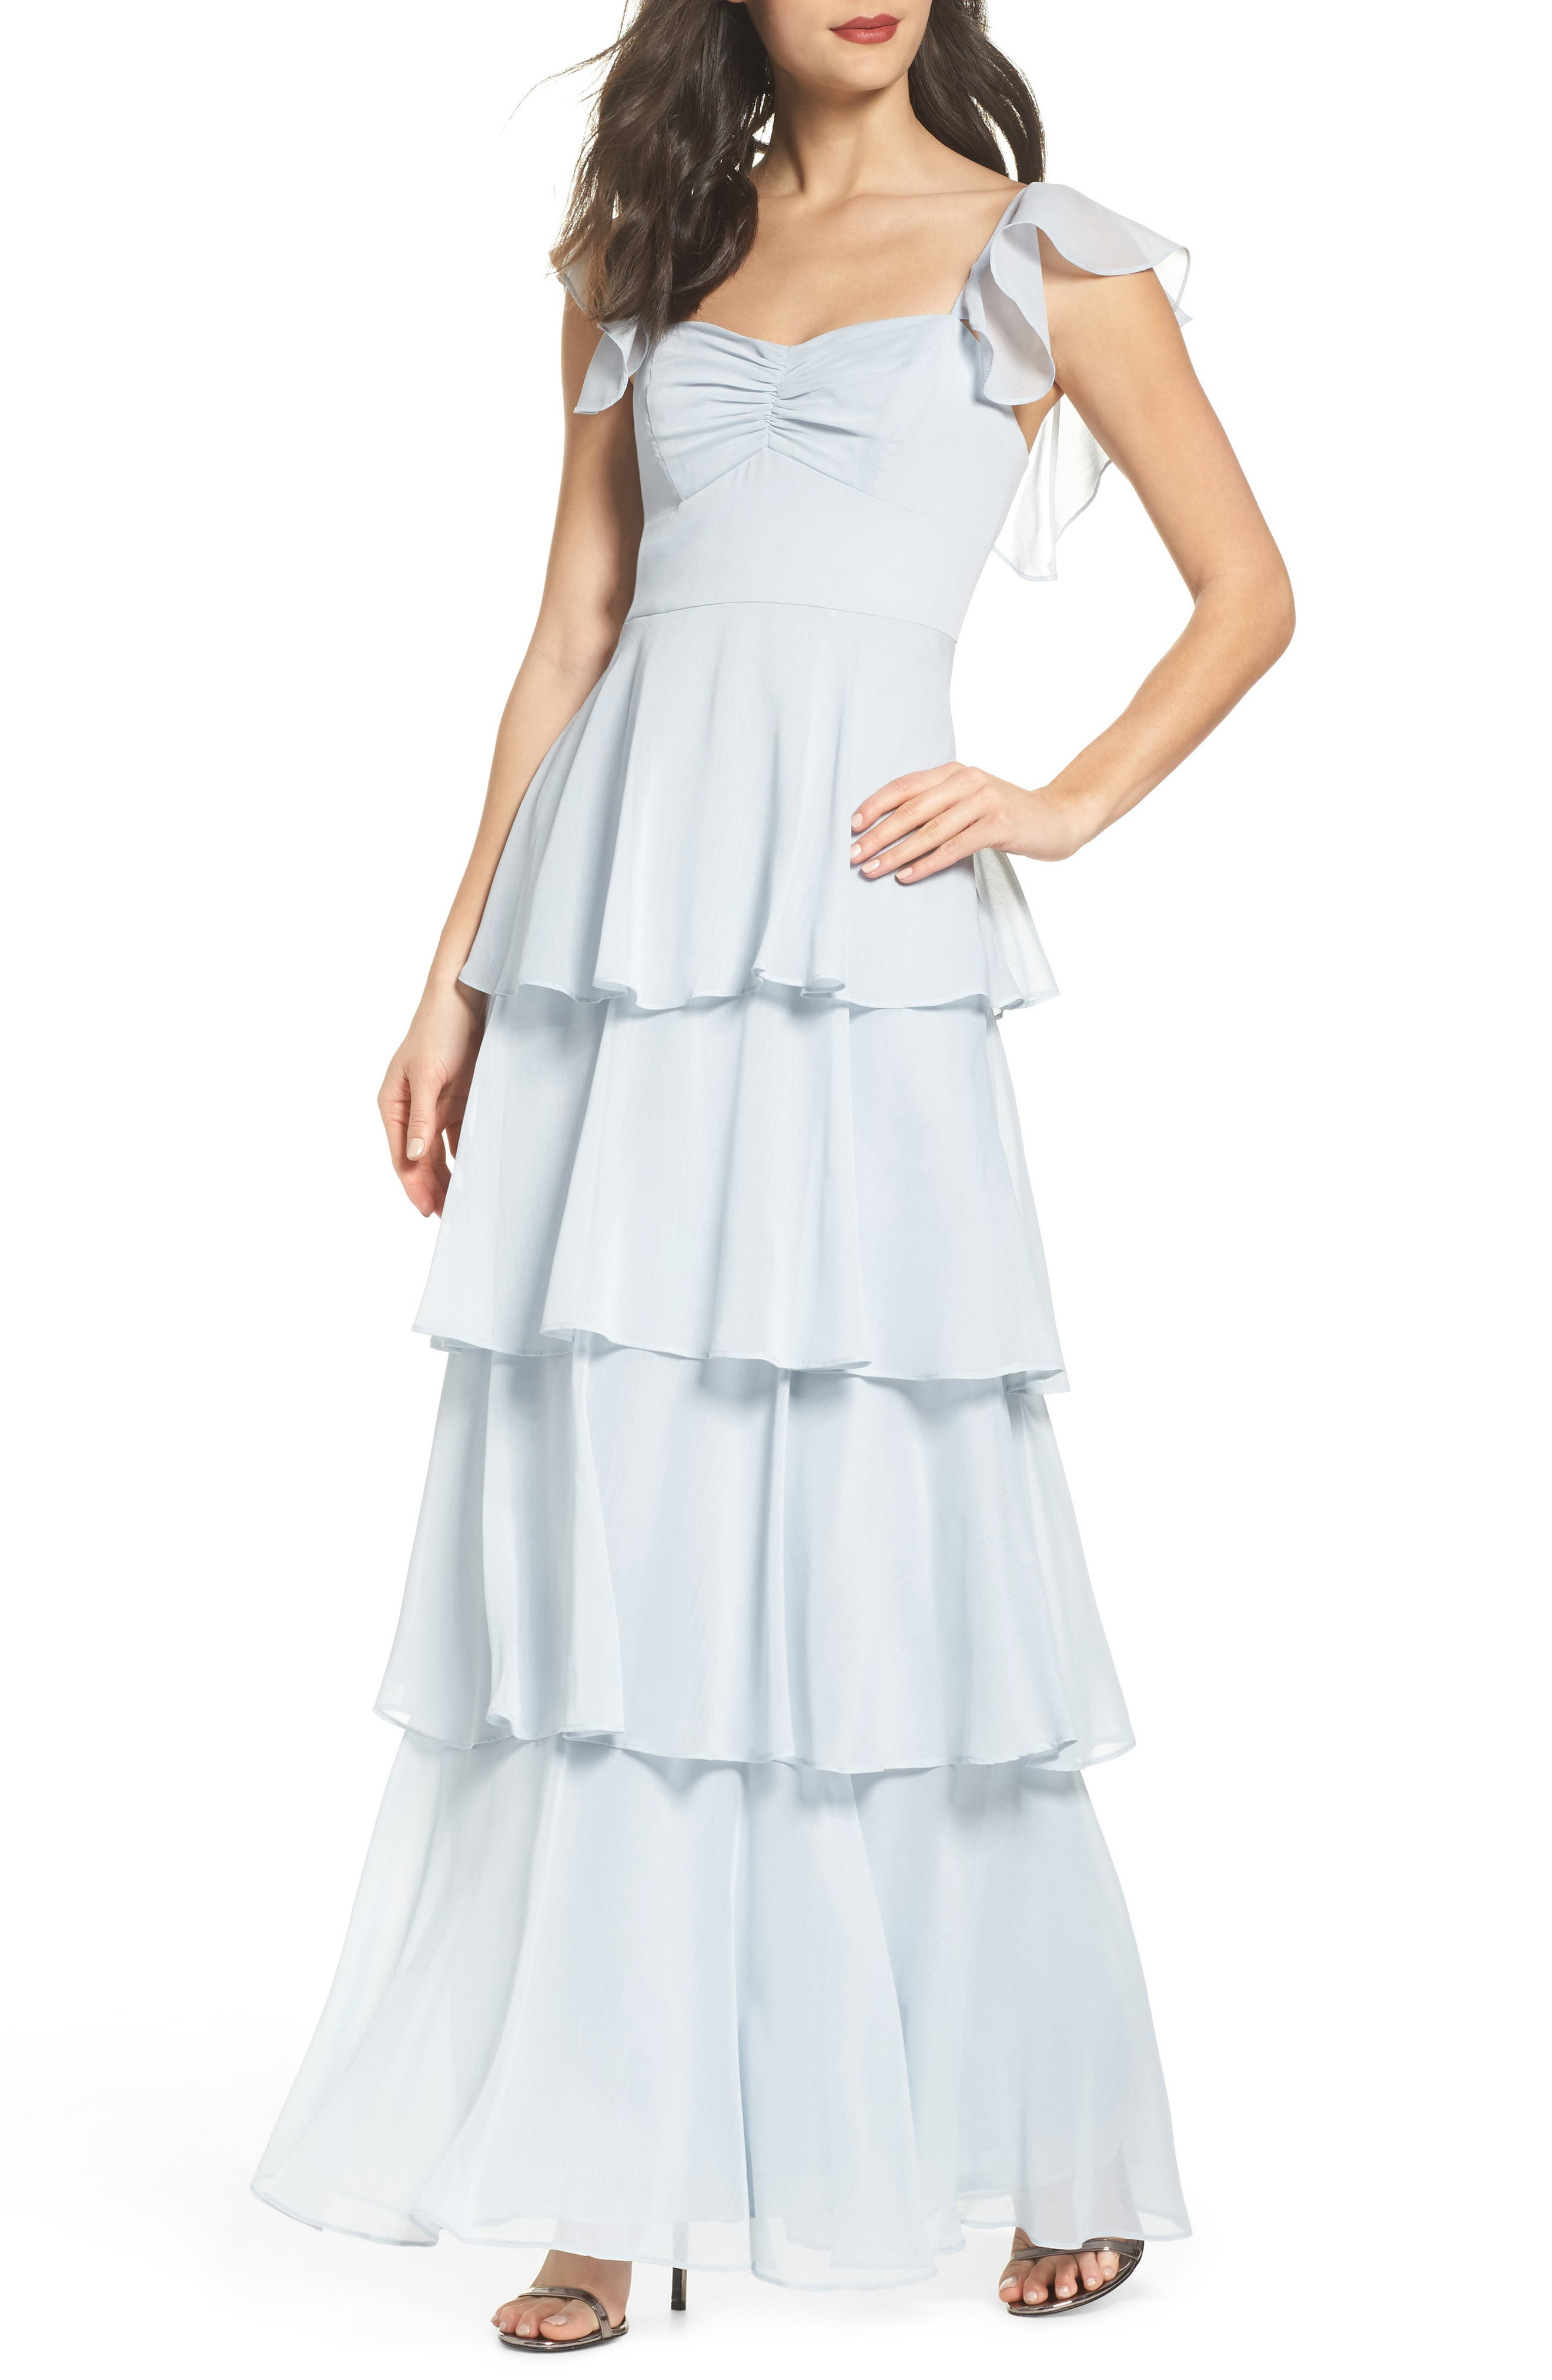 Abby Off the Shoulder Tiered Dress,                             Main thumbnail 1, color,                             Ocean Mist